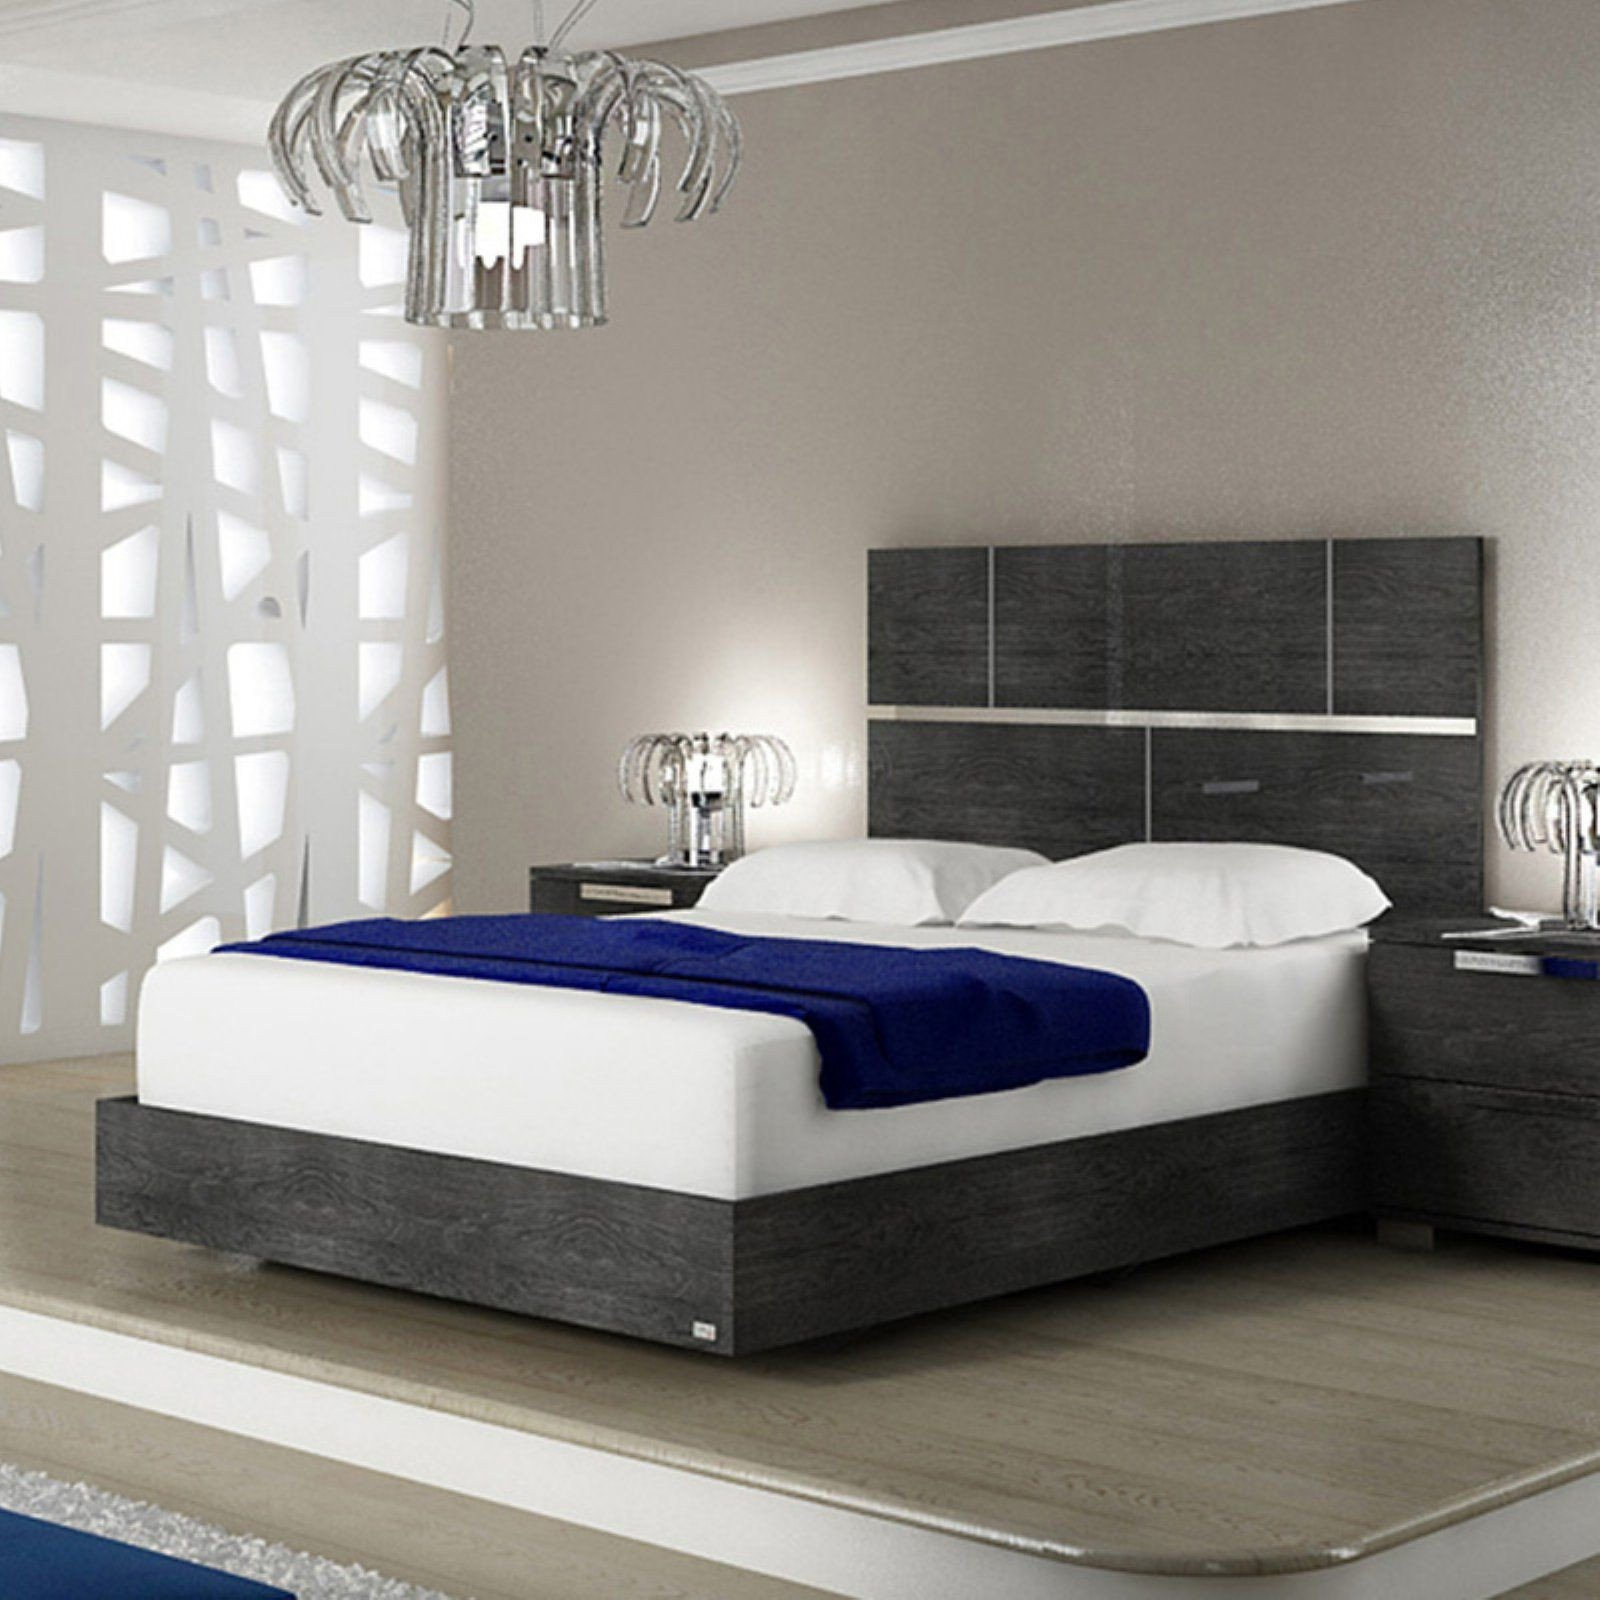 White Gloss Bedroom Furniture New Casabianca Milo Low Profile Lacquer Bed Size King